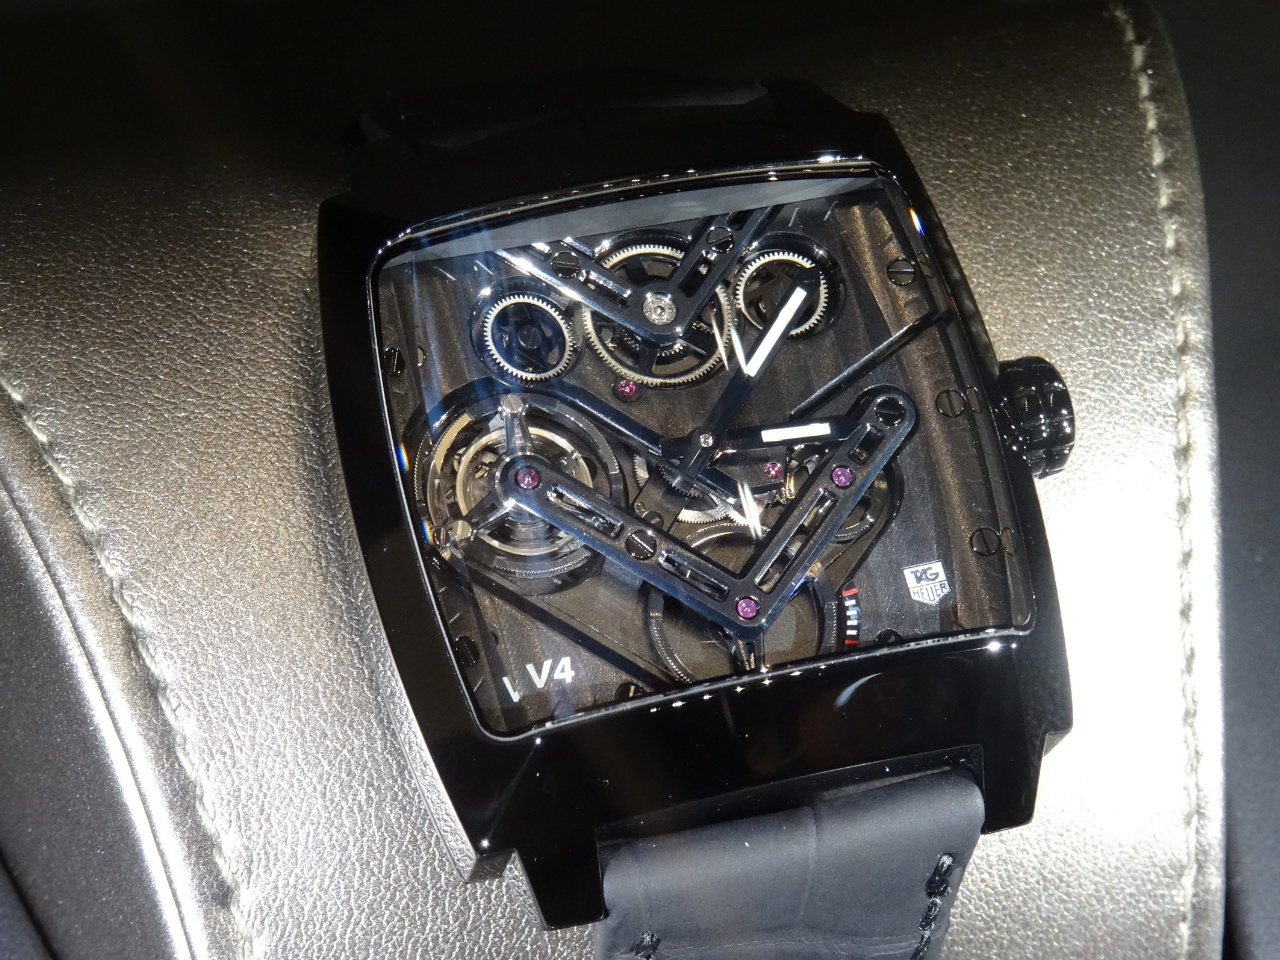 Prototype of the TAG Heuer Monaco v4  Tourbillon - Baselworld 2014